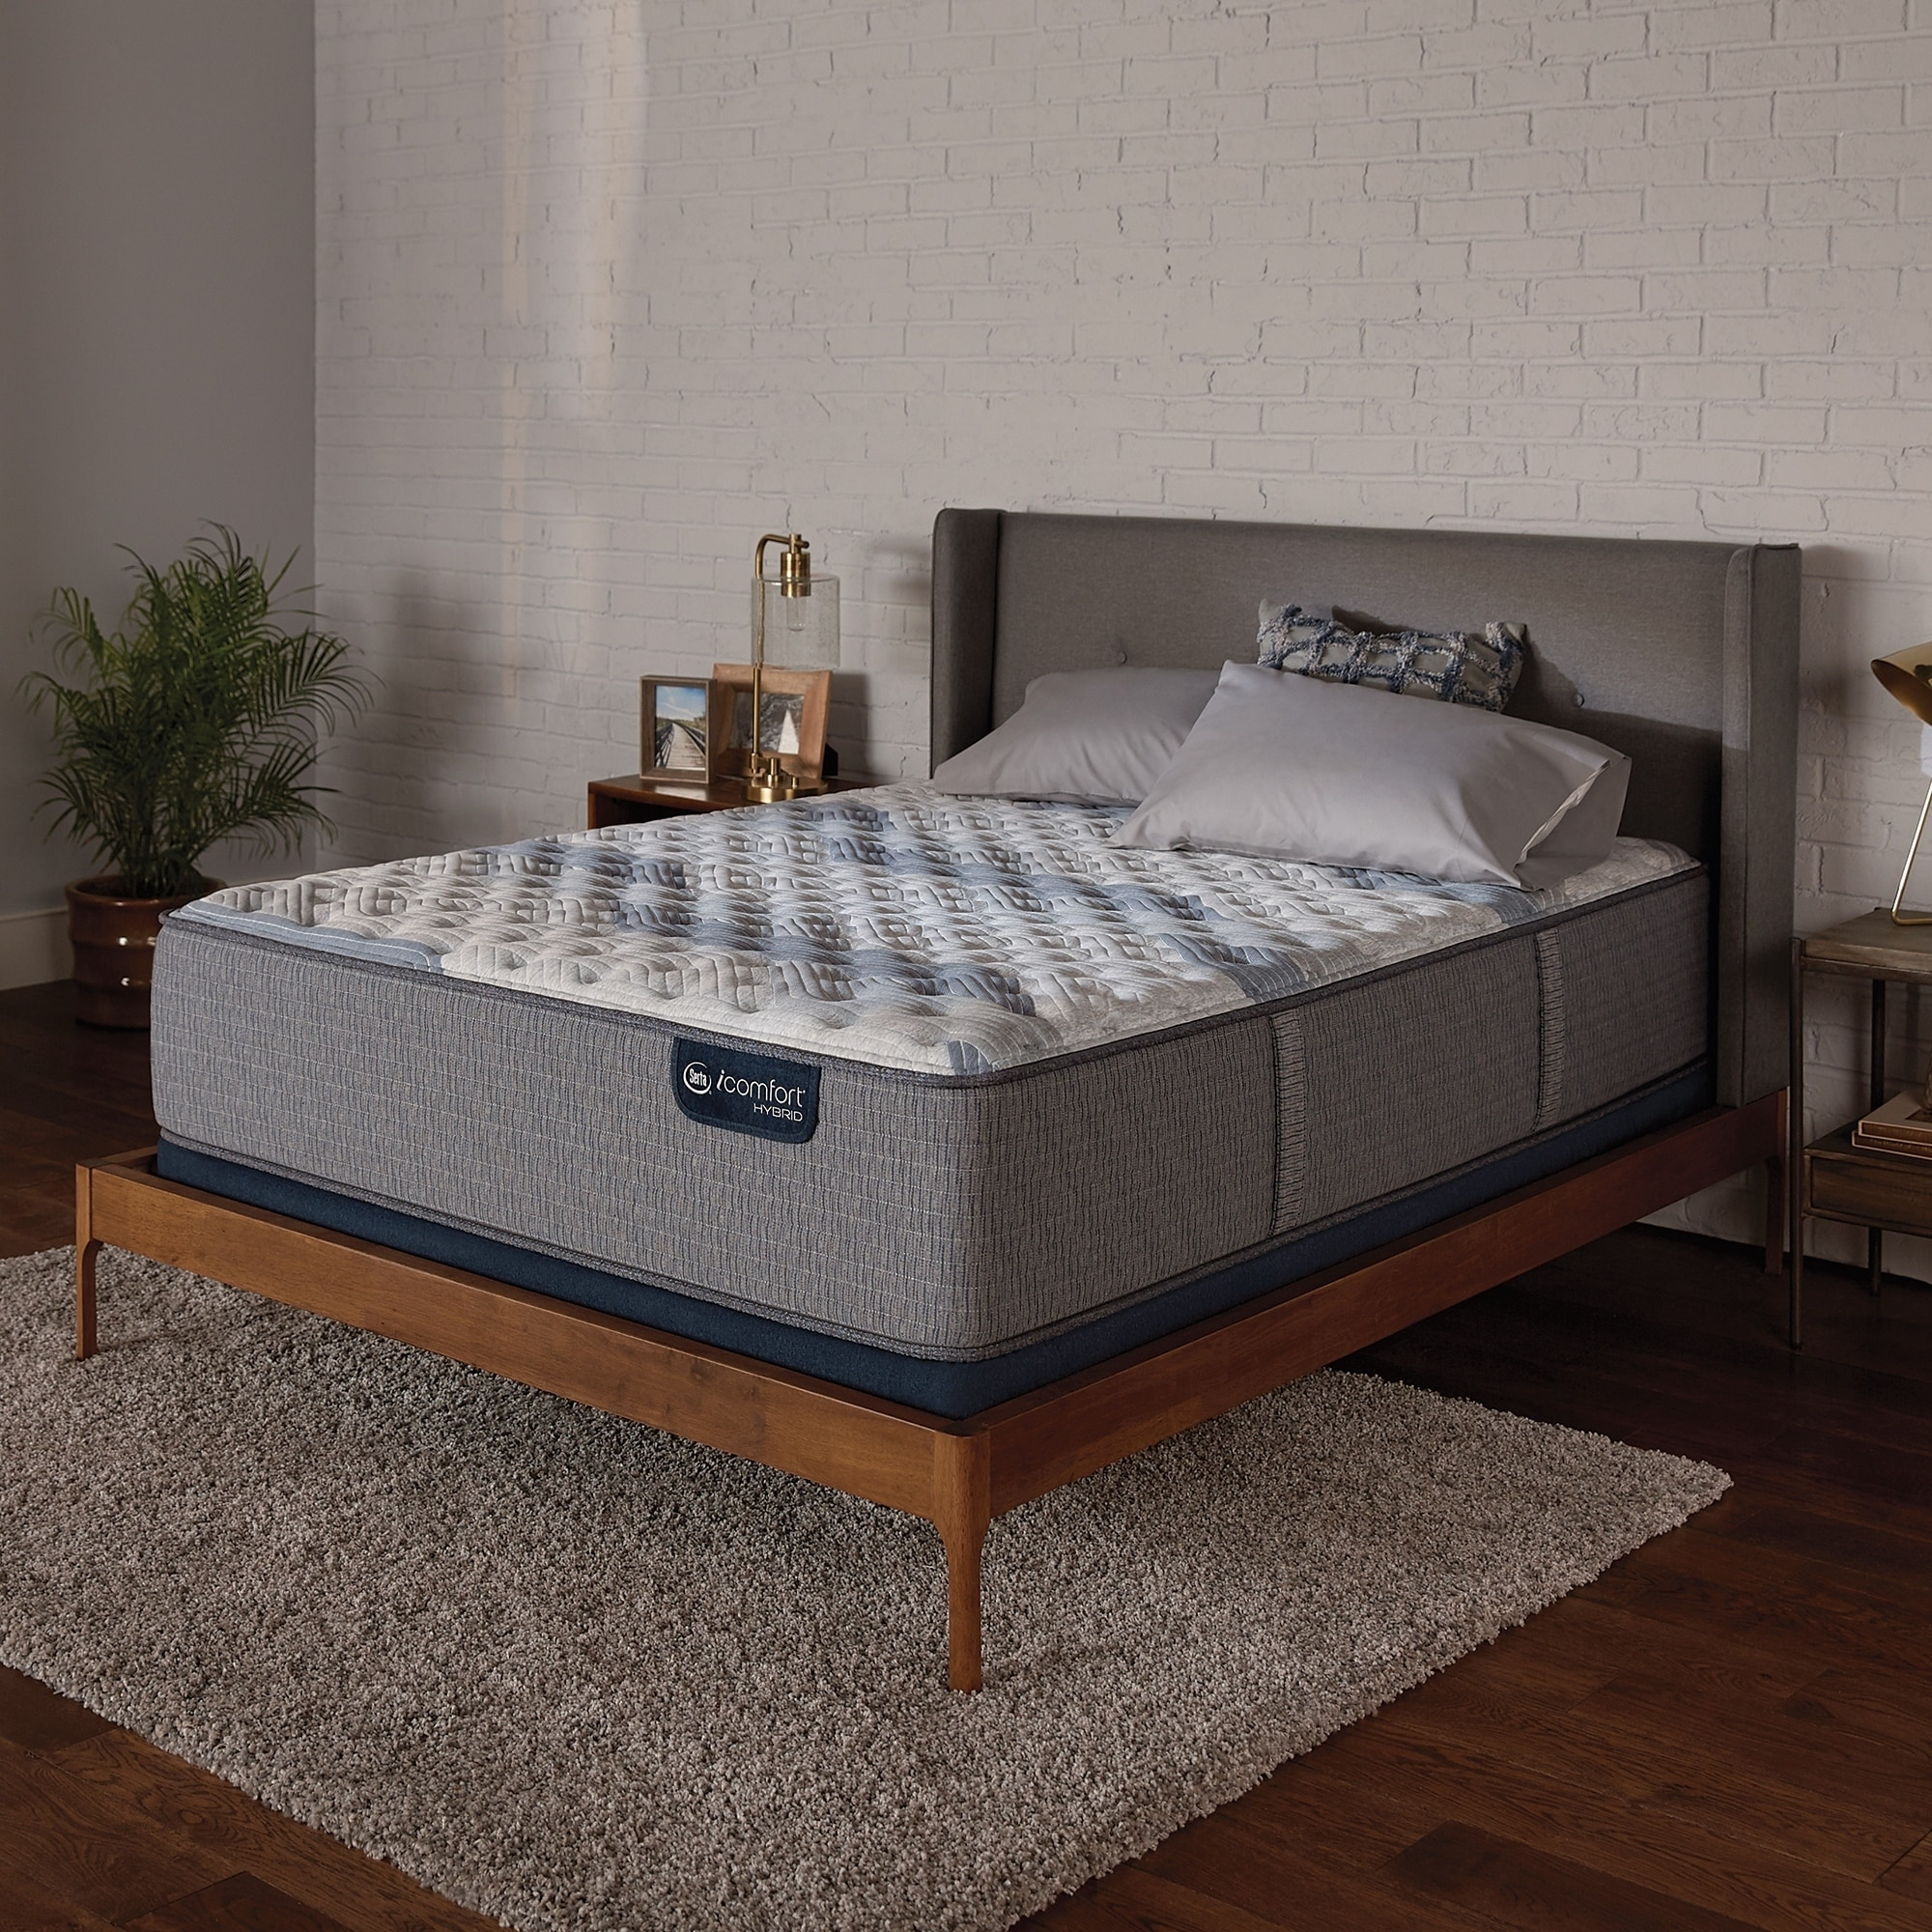 Attrayant IComfort Hybrid Blue Fusion 500 14 Inch Extra Firm Full Size Mattress Set